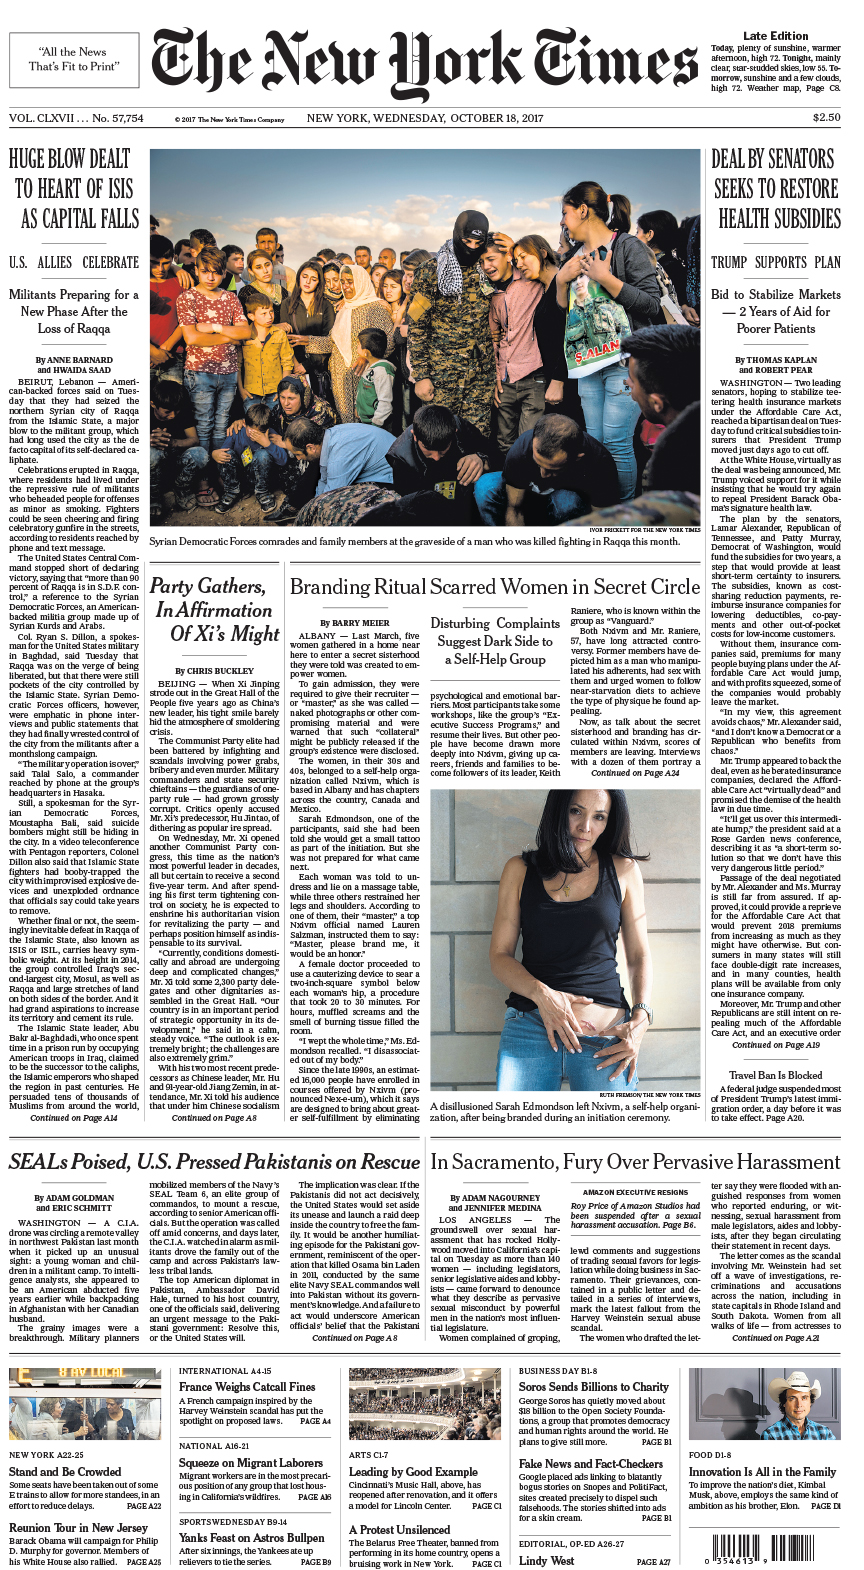 Front Pagenew York Times Design Of: New York Times Front Page Oct 18, 2017